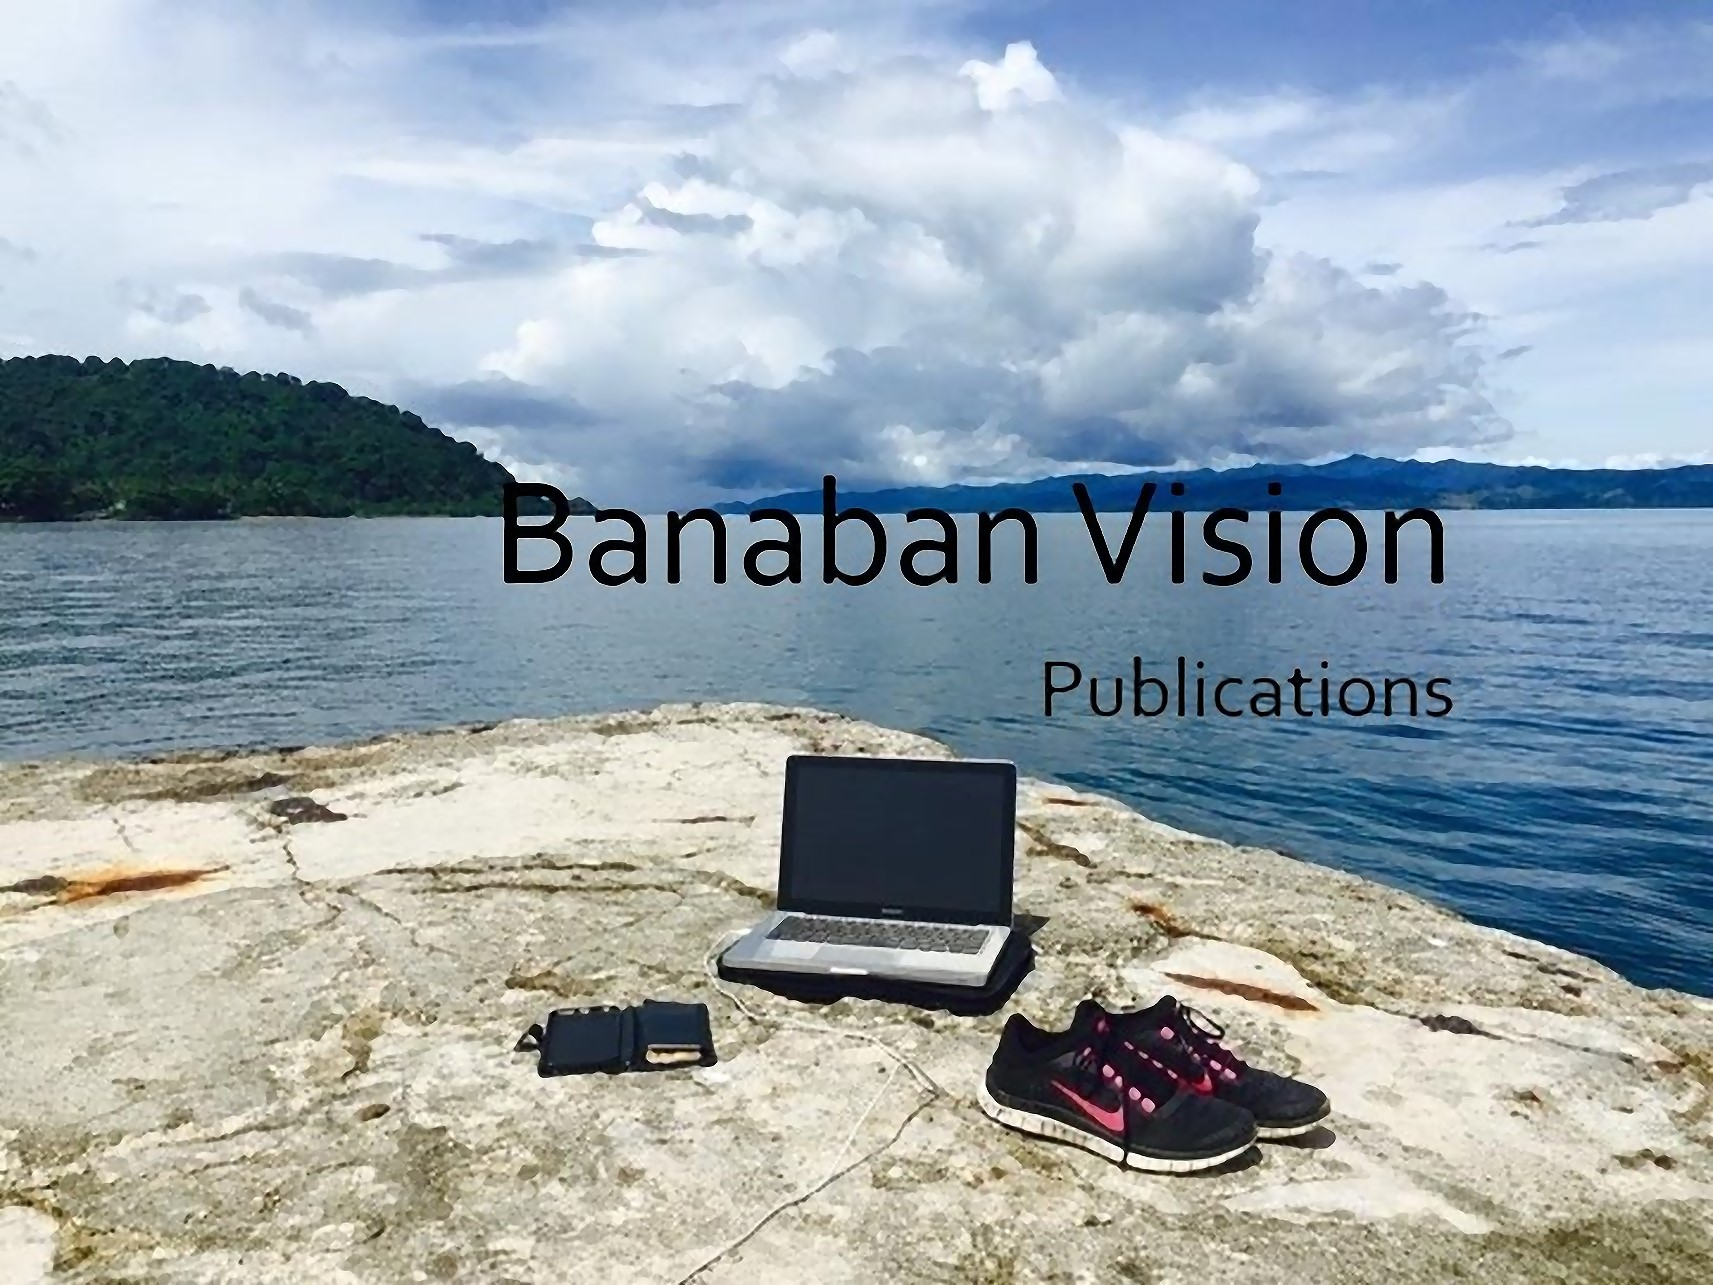 Banaban Vision Publications Office